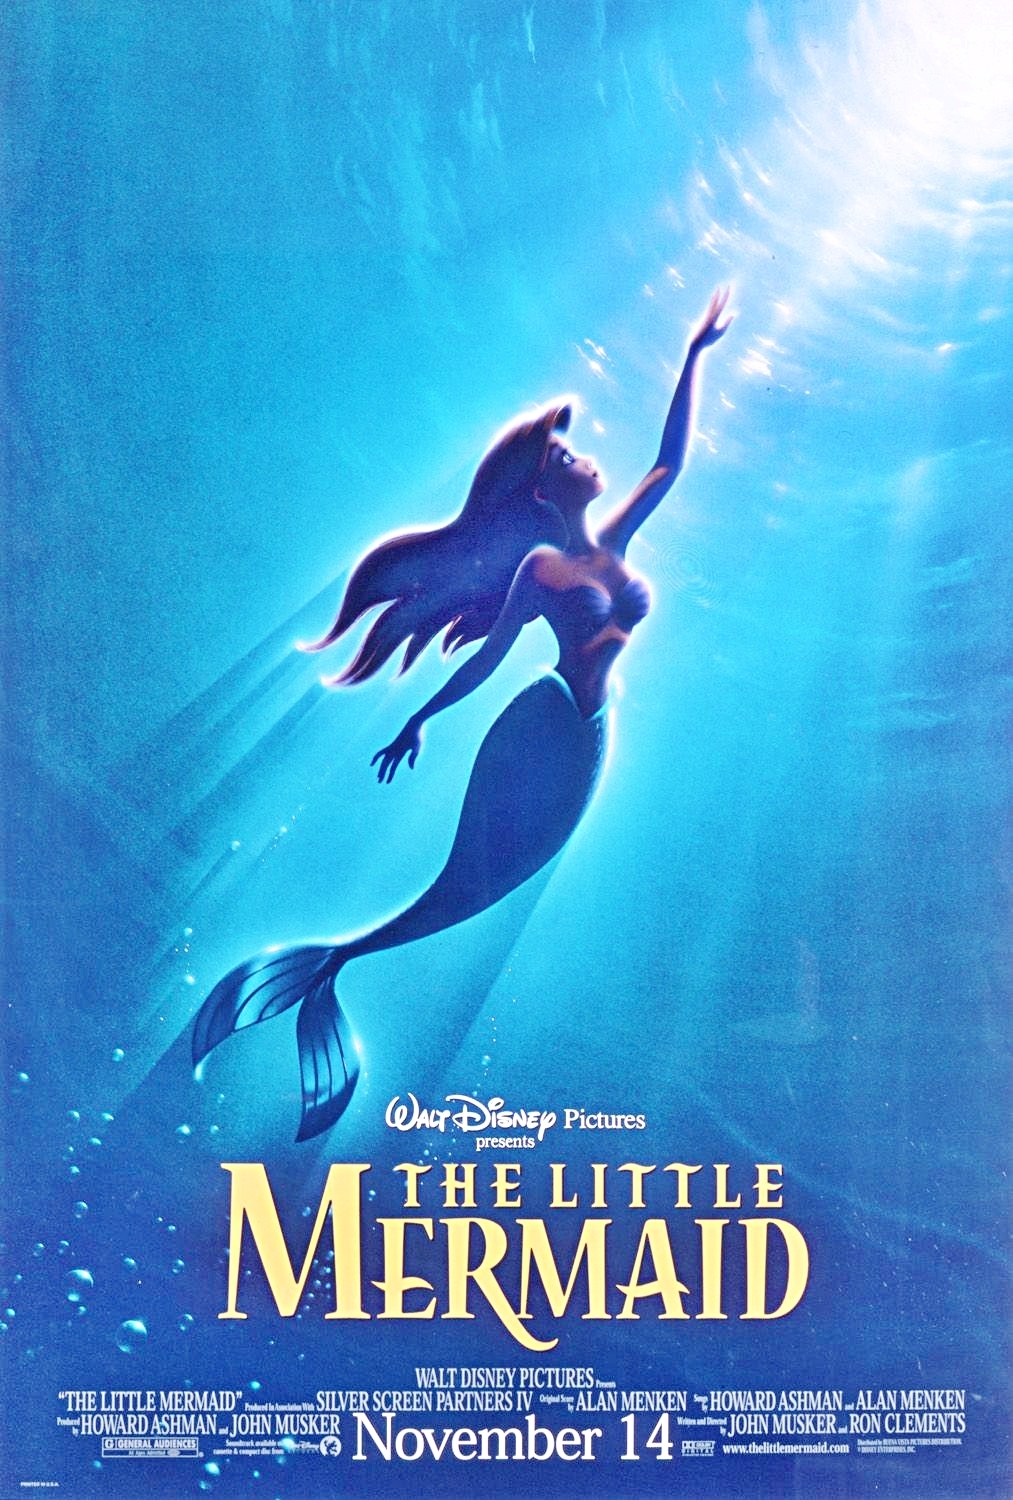 to-the-surface-poster-the-little-mermaid-photo-18652057-fanpop-JgrN1d-quote